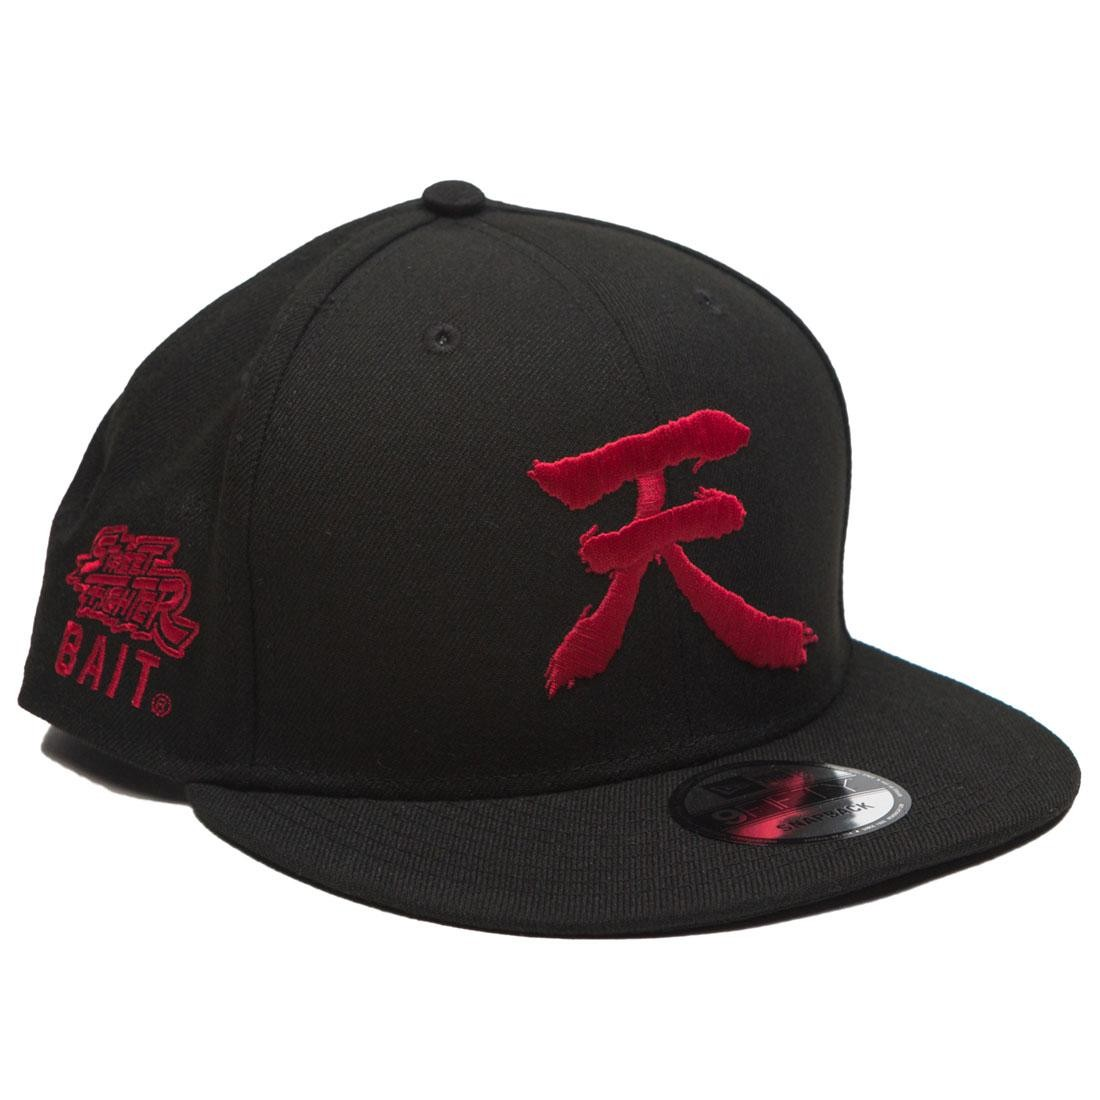 BAIT X Street Fighter x New Era Akuma Ten Snapback Cap (black)